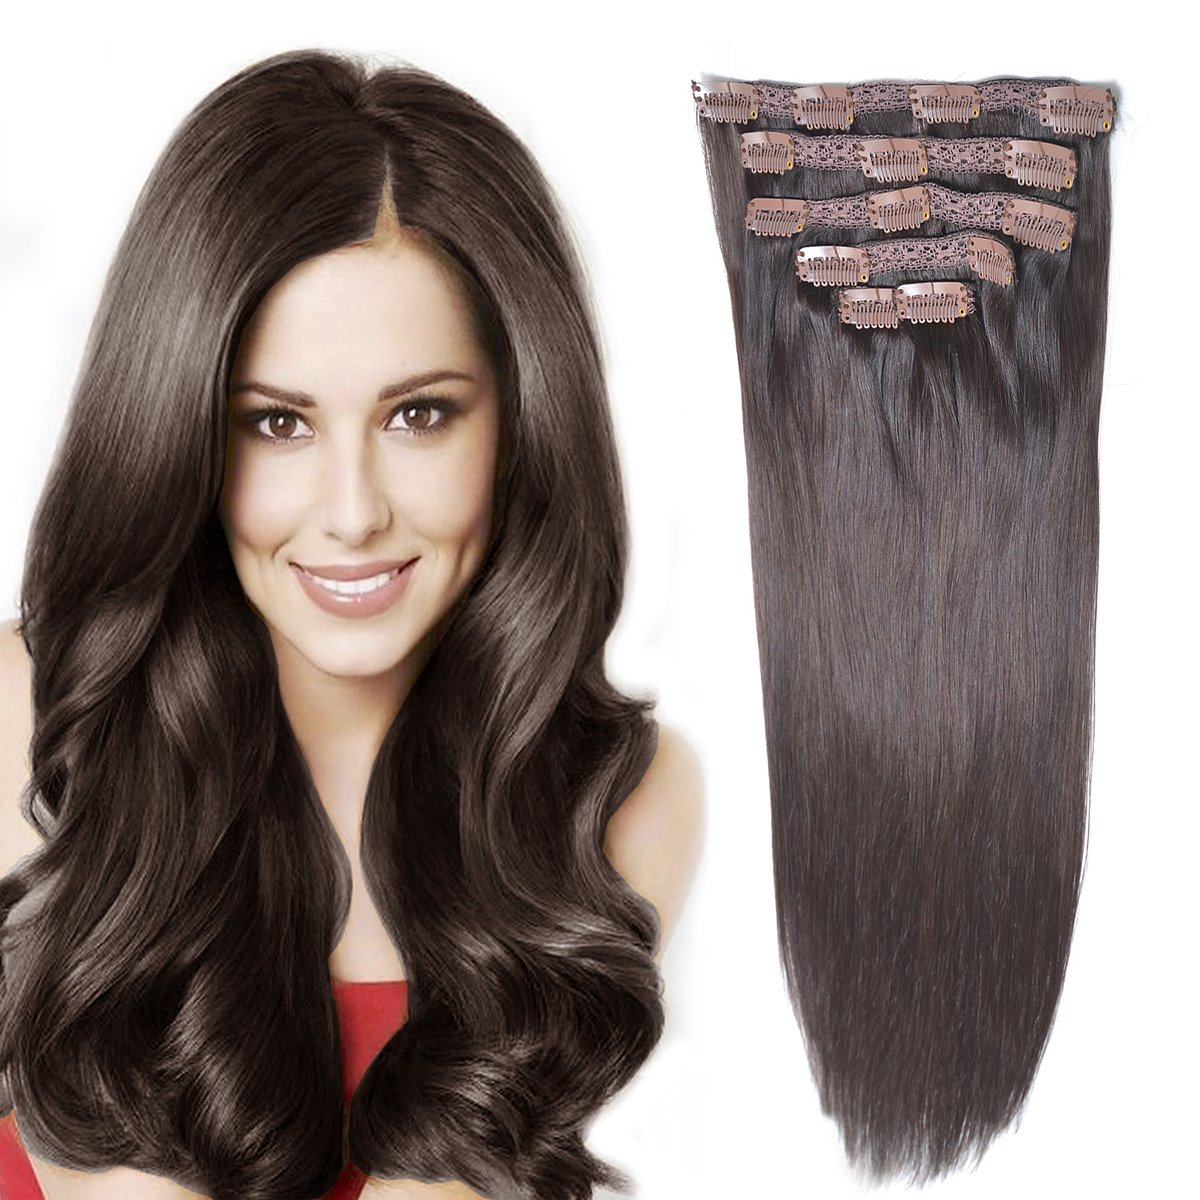 14''Remy Human Hair Clip in Extensions for Women Thick to Ends Dark Brown(#2) 6Pieces 70grams/2.45oz by BHF HAIR